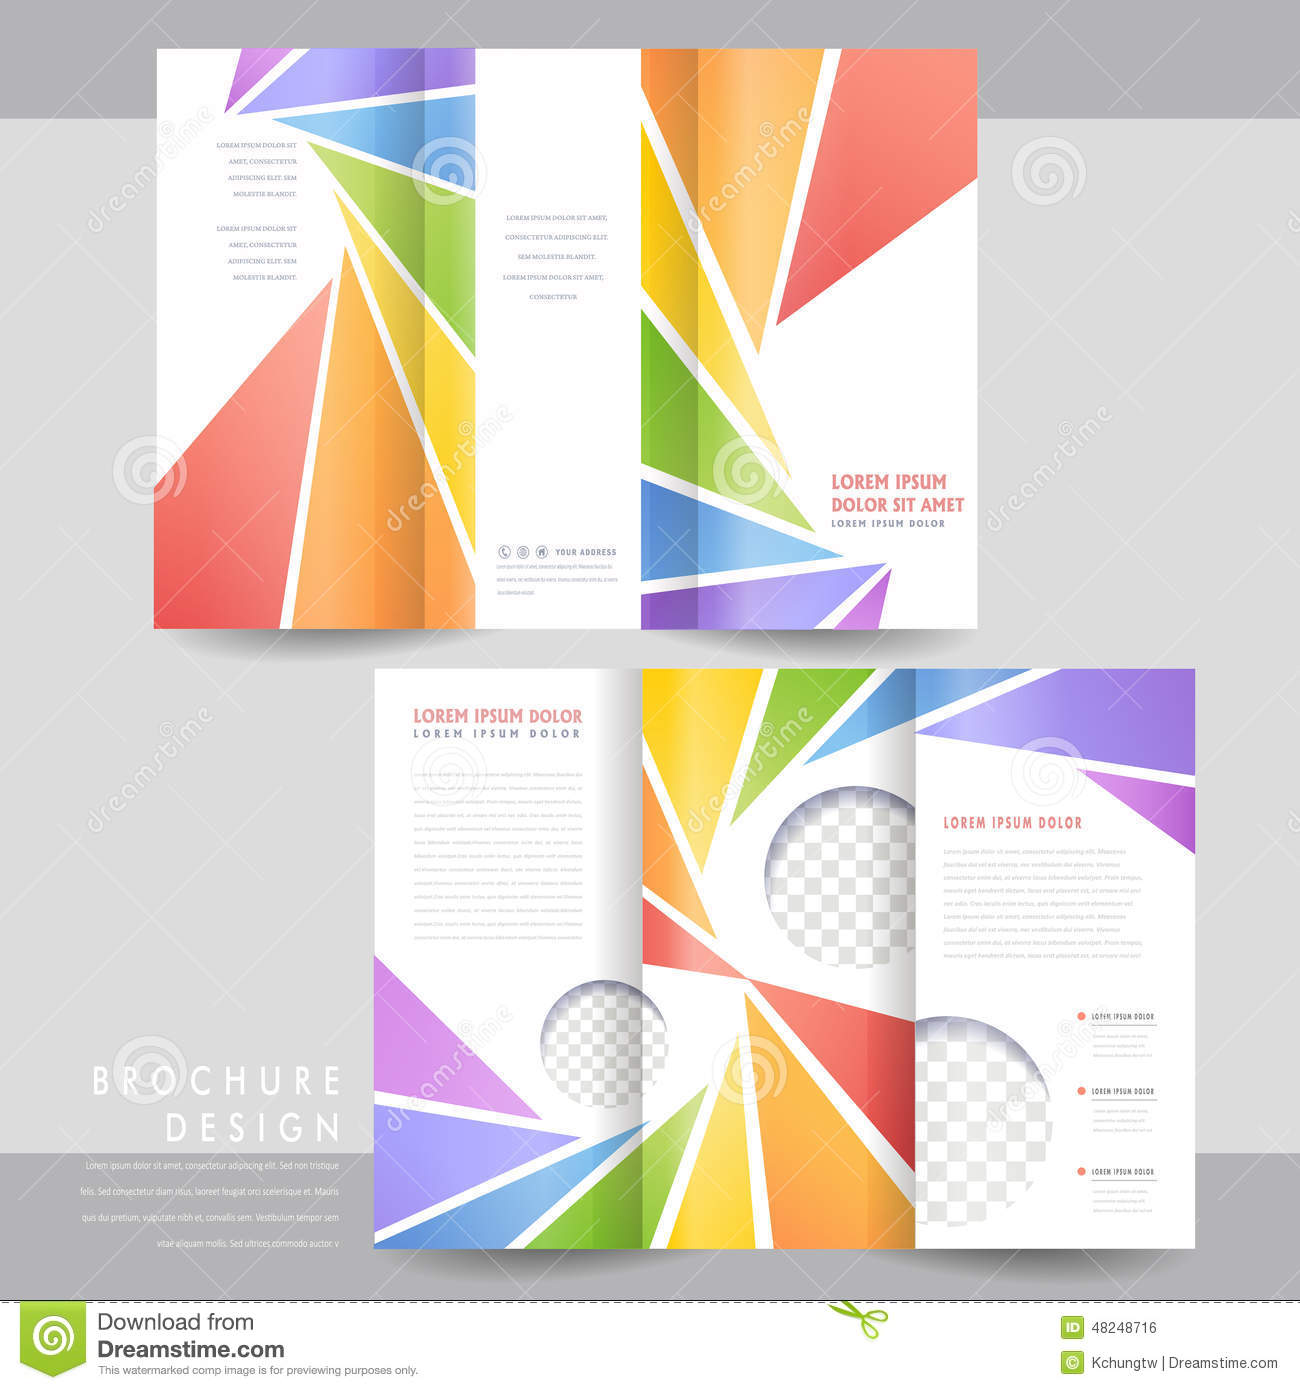 brochure template designs - colorful tri fold brochure template design stock vector